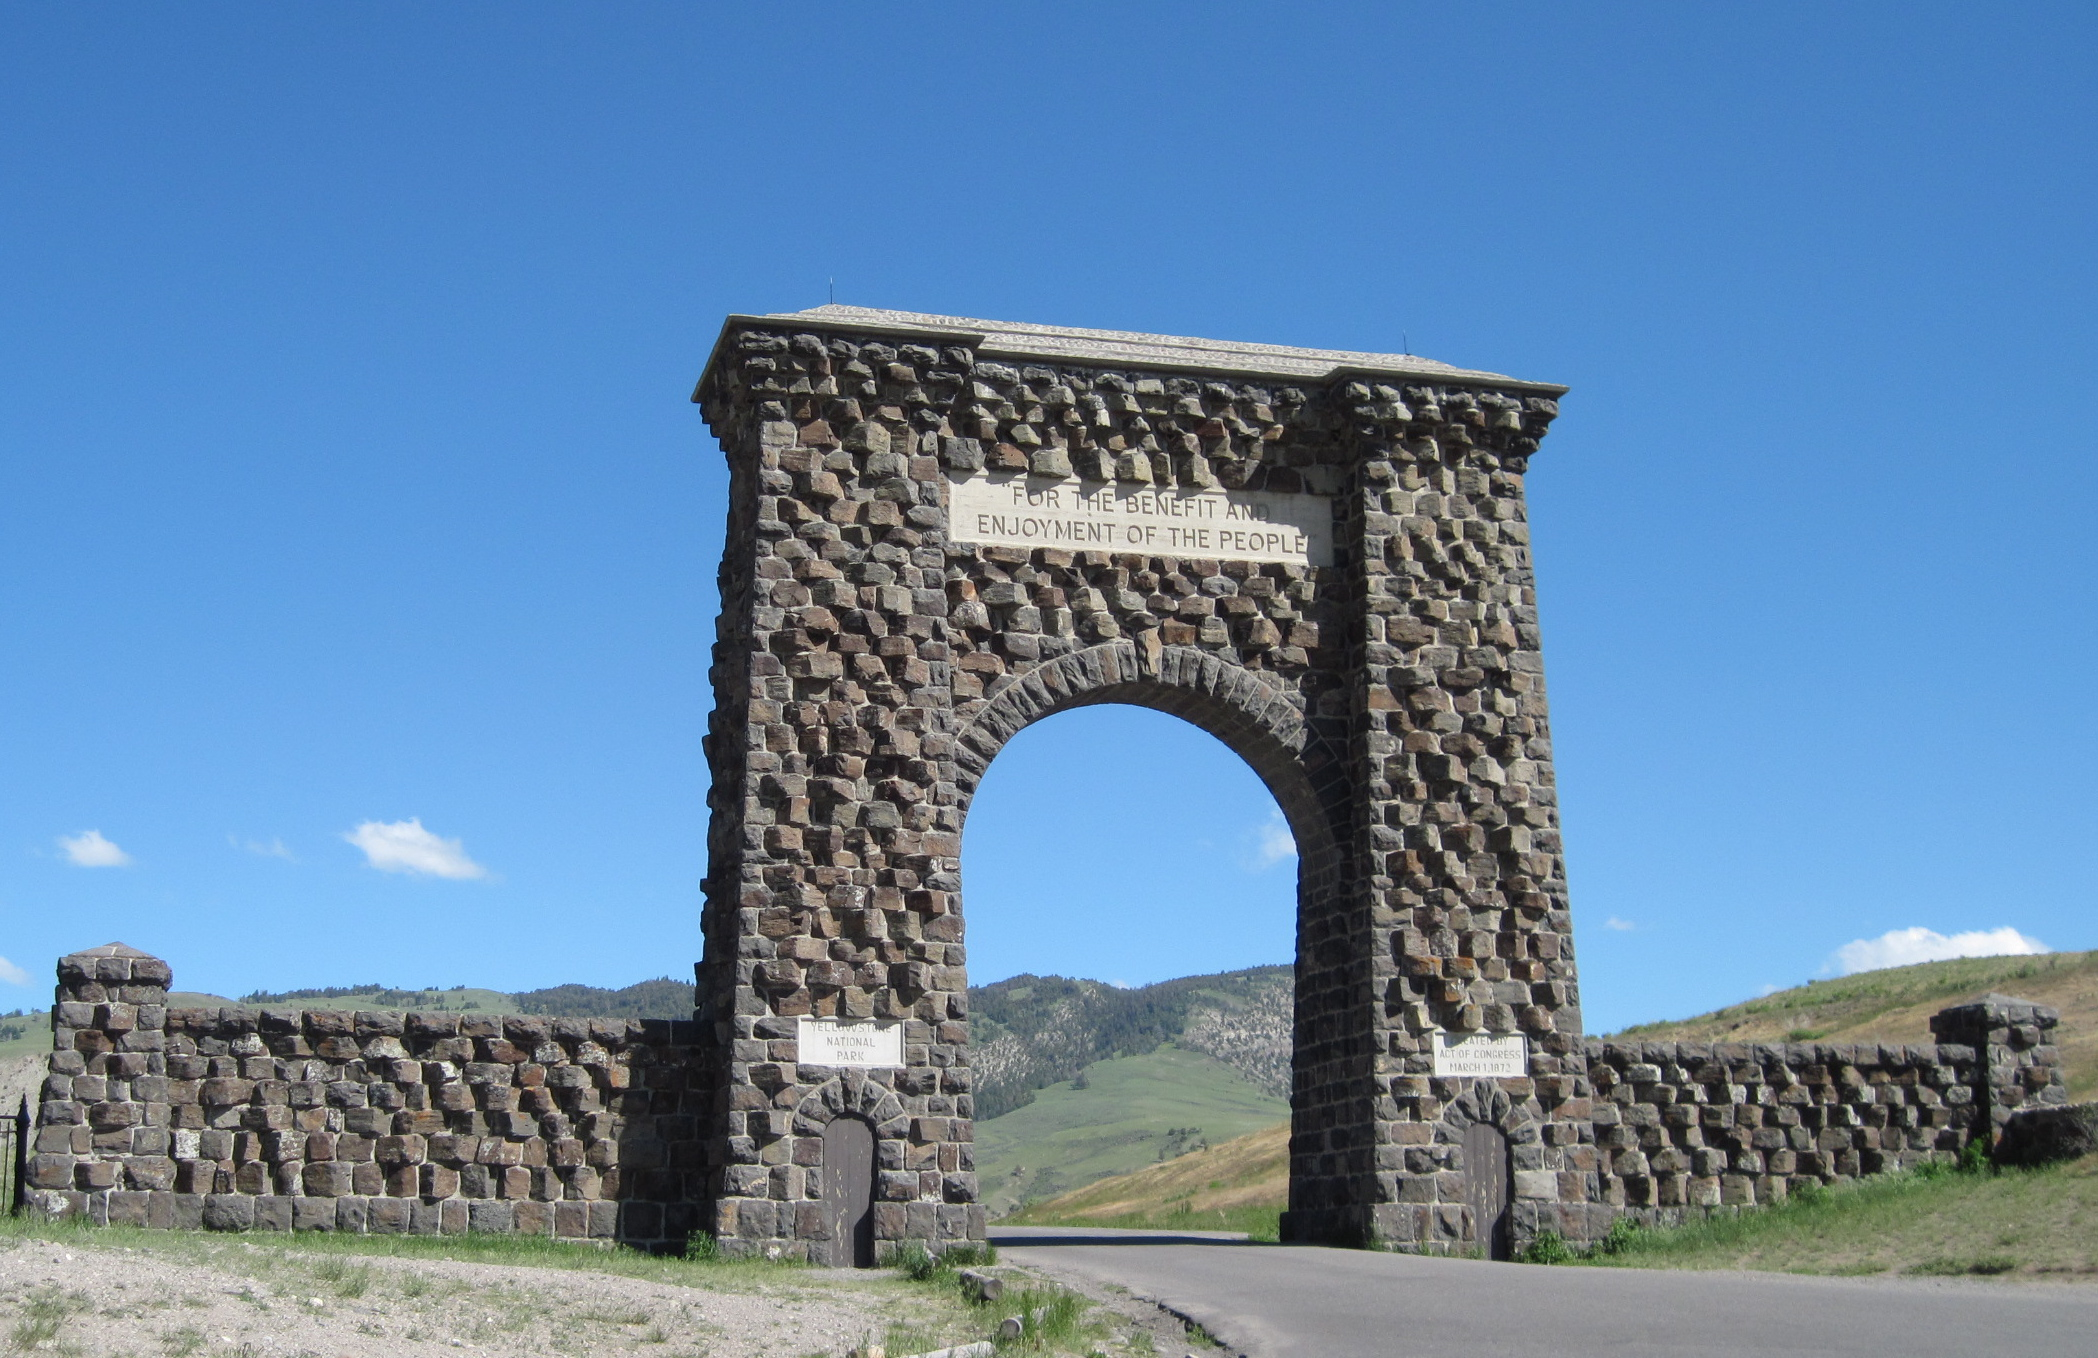 """The Roosevelt Arch at the north entrance of Yellowstone National Park sends a clear message to park visitors, that national parks are """"For the benefit and enjoyment of all people,"""" Yellowstone National Park, Wyoming, June 22, 2009   Photo courtesy Melanie Walden, St. George News"""